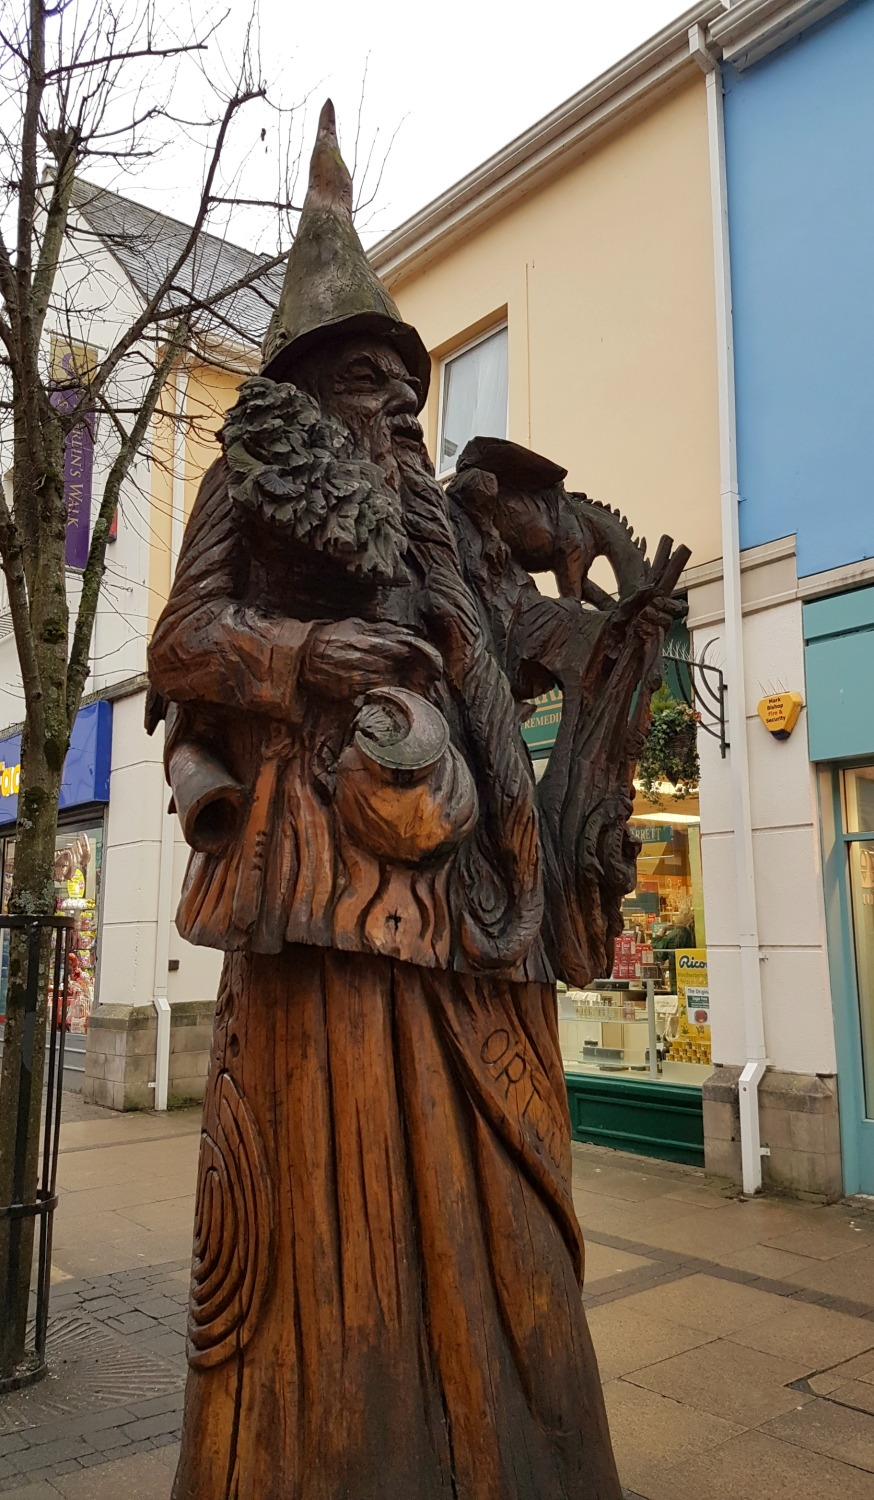 The statue of Merlin where Merlin's Oak once stood in Carmarthen, Wales -on our journey to discover Welsh legends